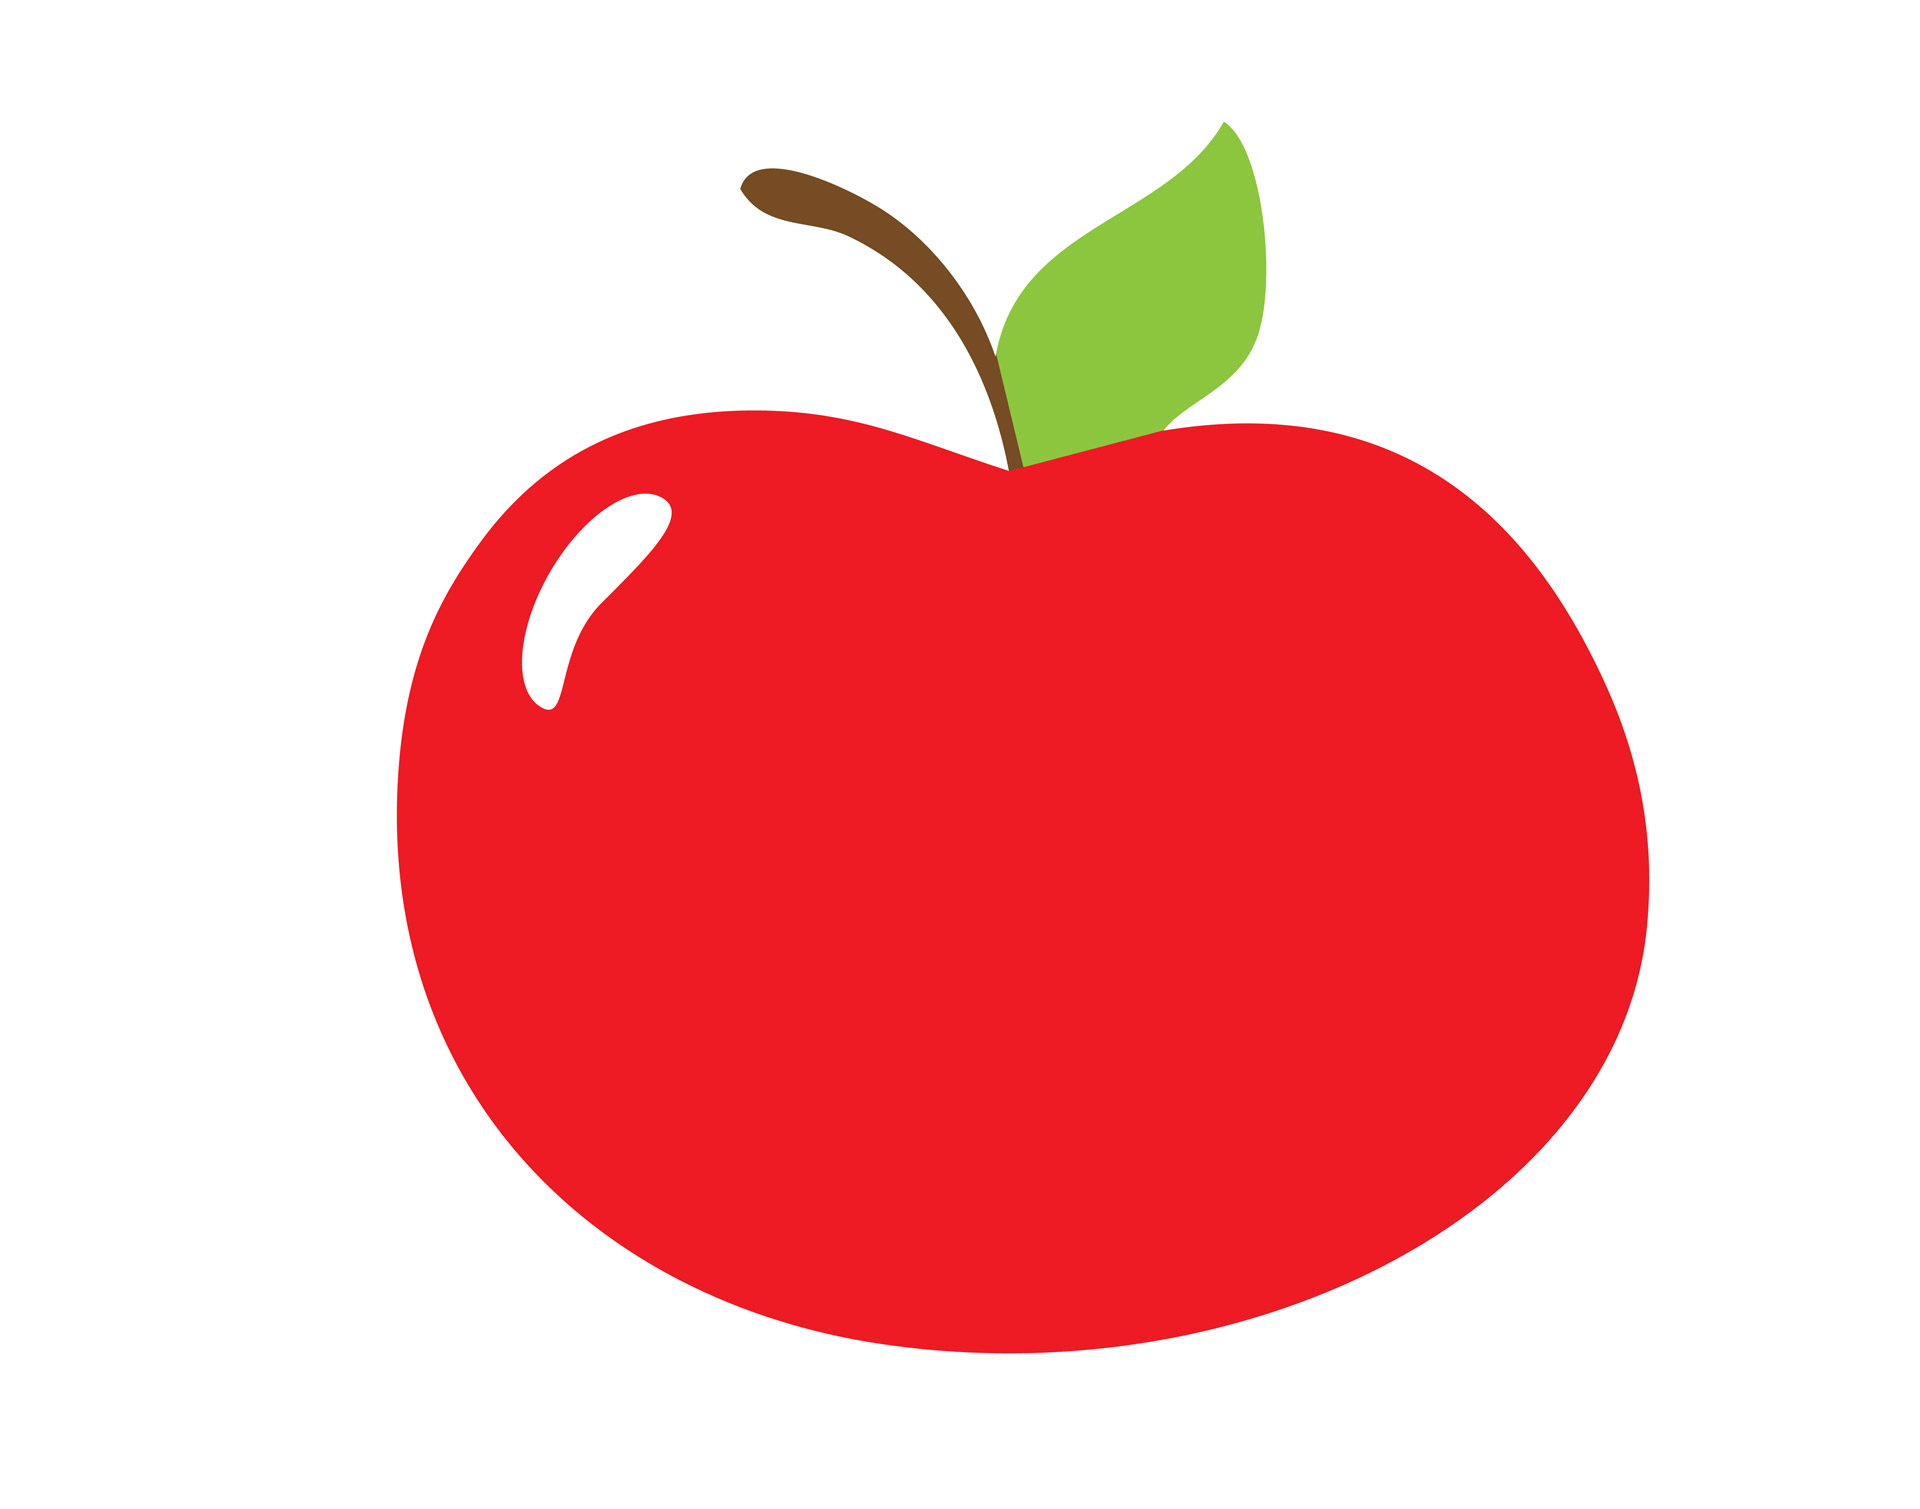 Apple clipart jpegs vector freeuse library Apple outline clipart images pictures page 1 - Clipartix vector freeuse library